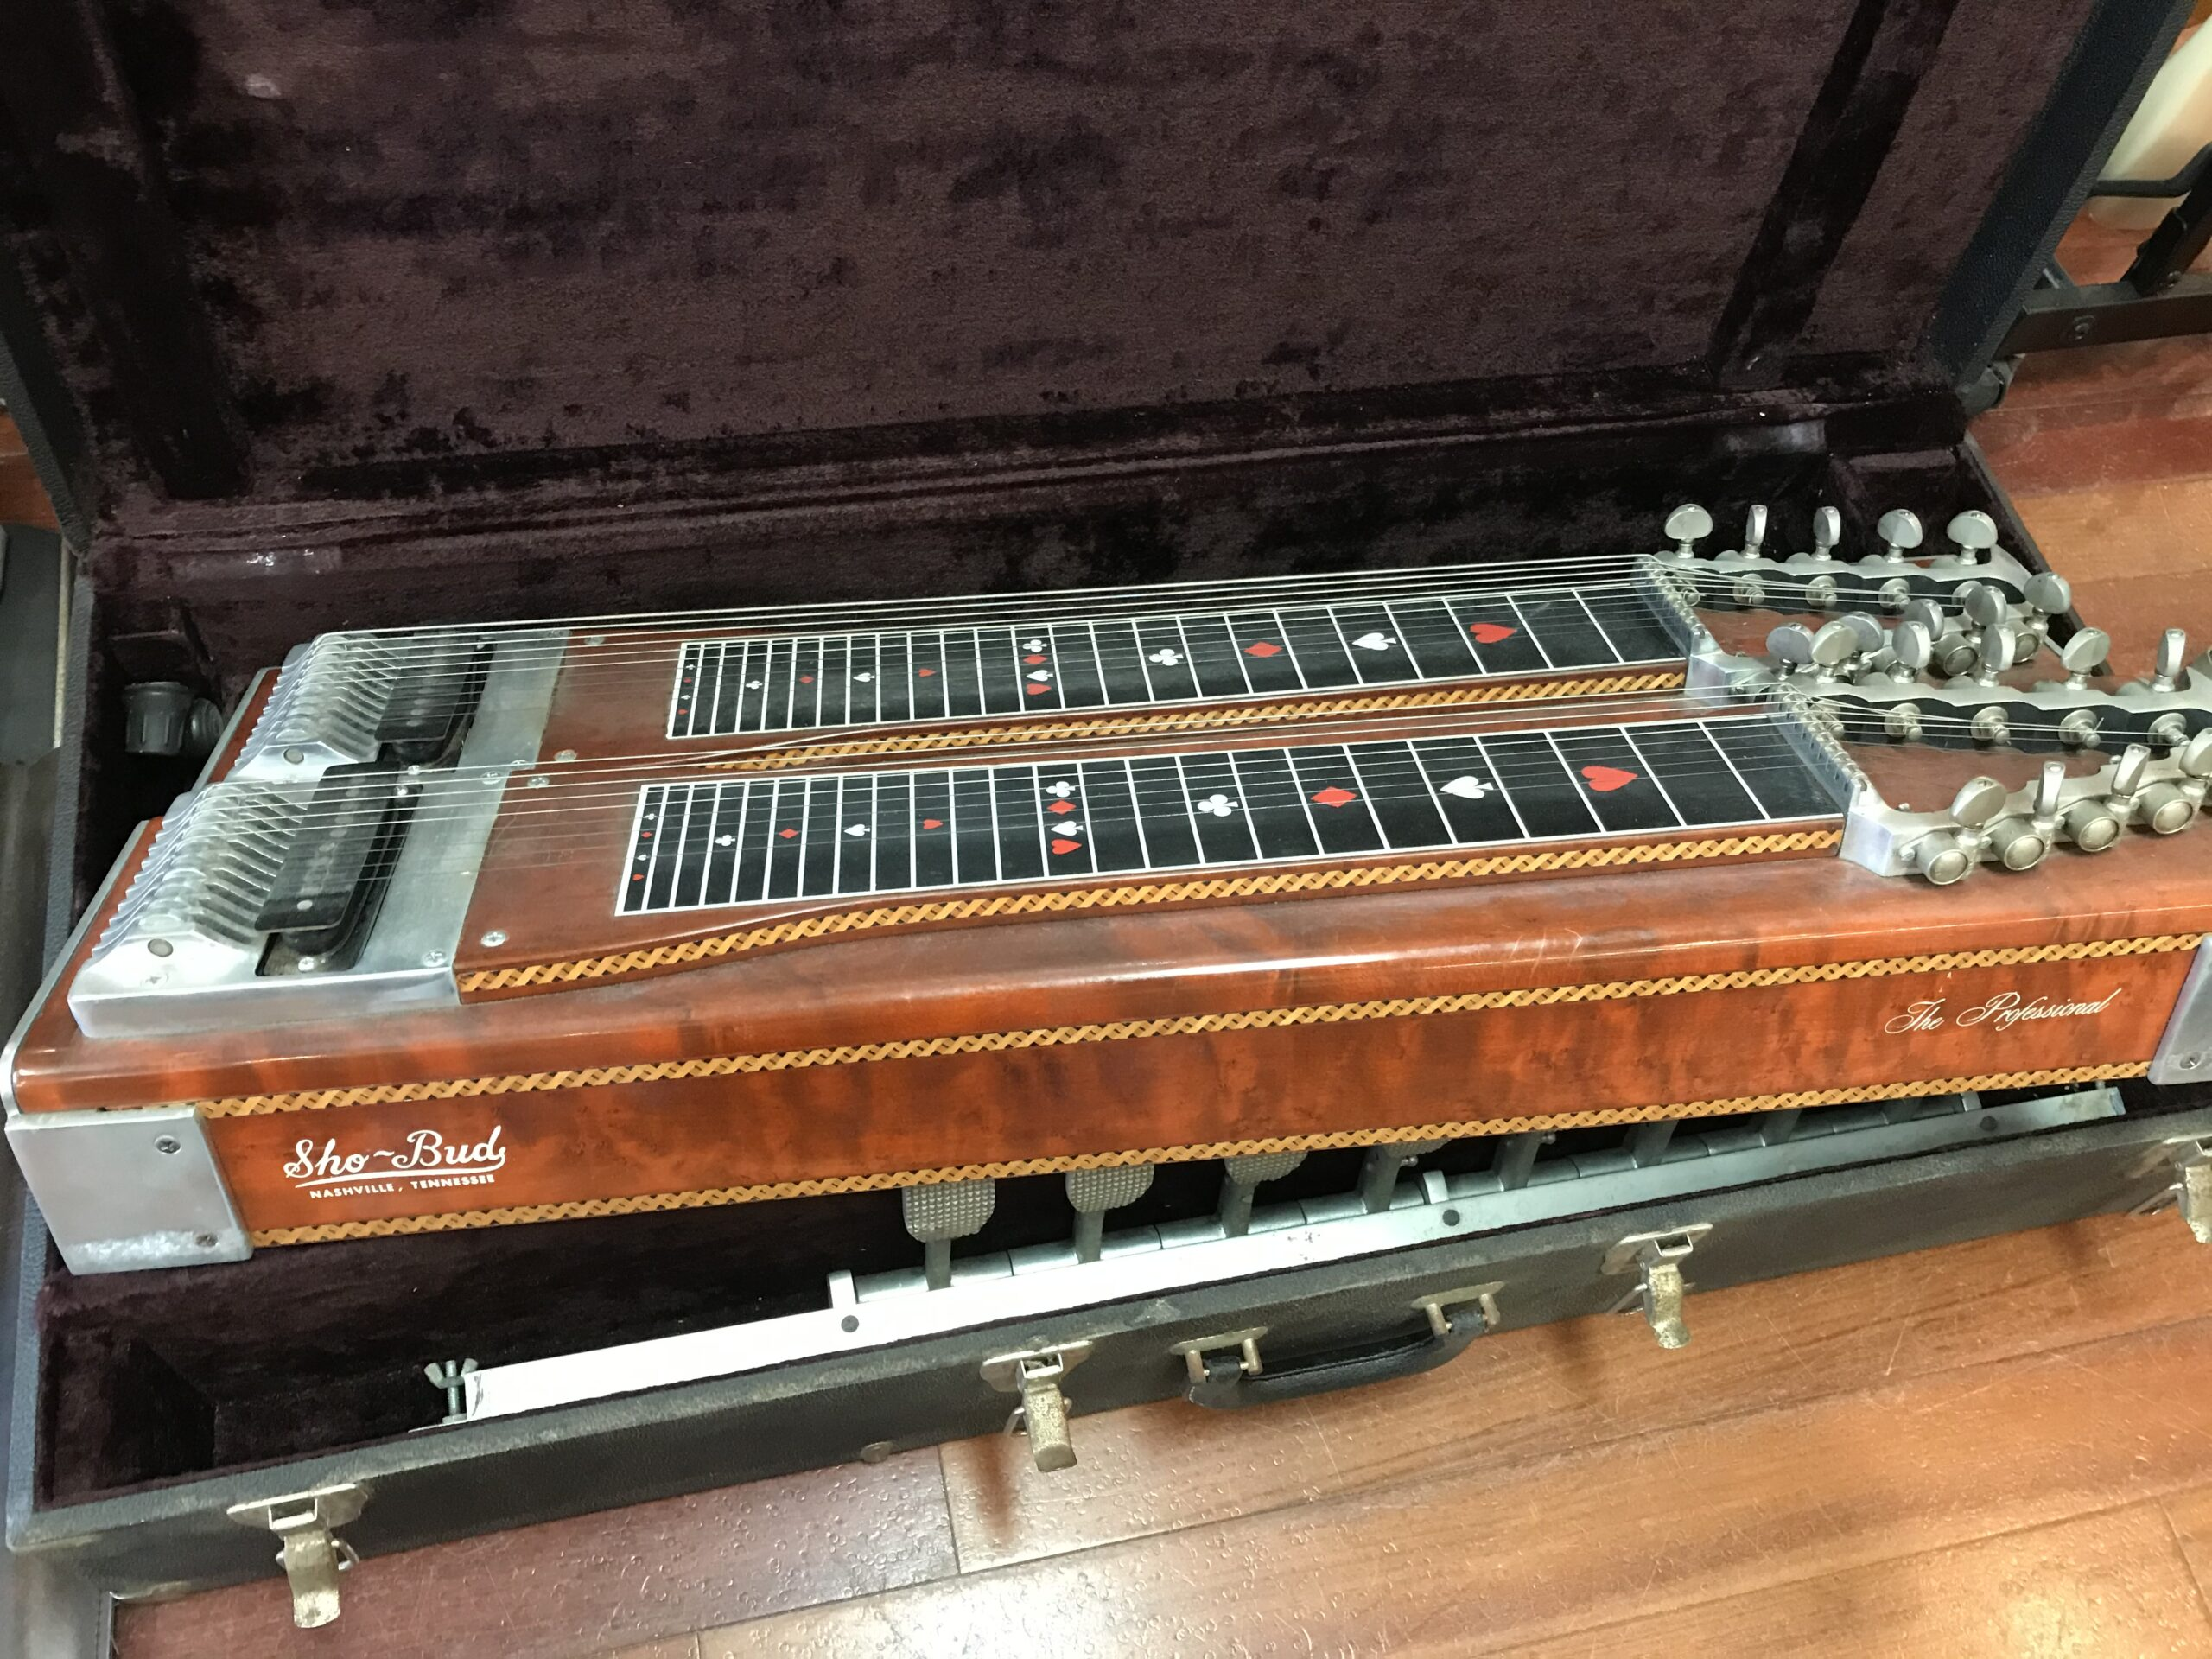 70s Sho Bud the Professional double pedal steel